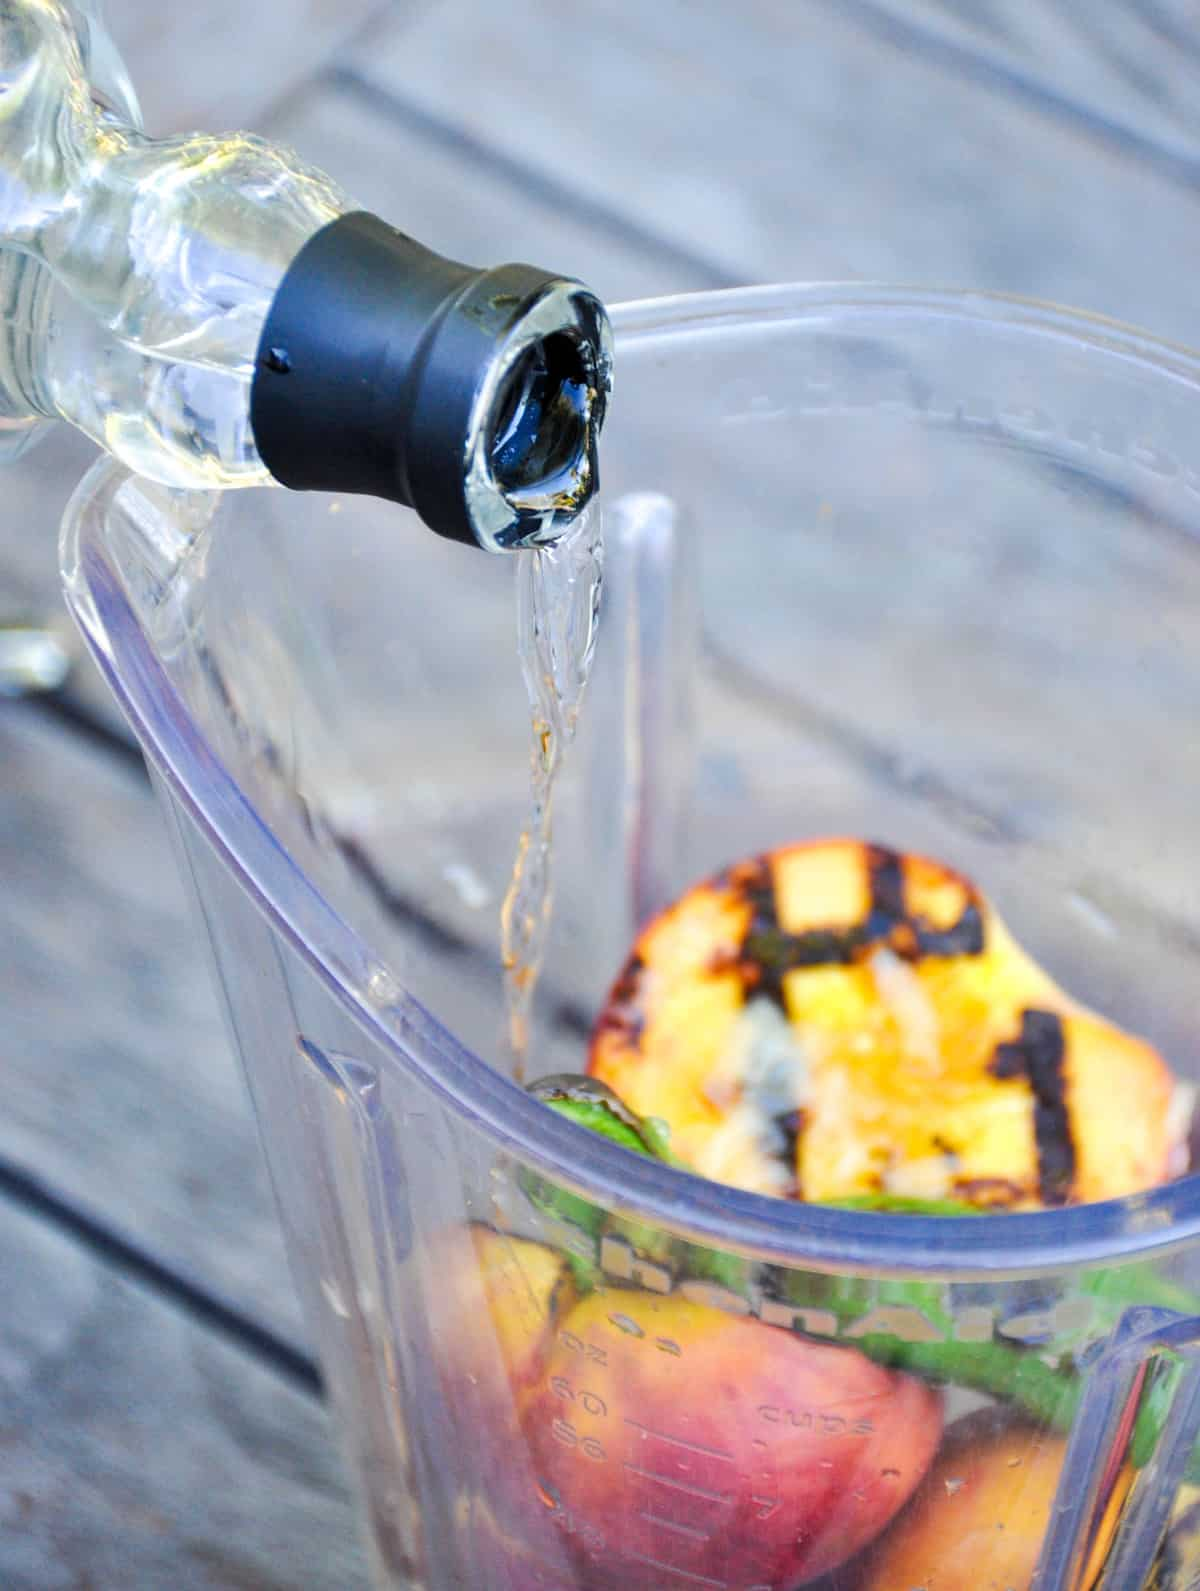 Pour tequila in blender over grilled peach and jalapeño